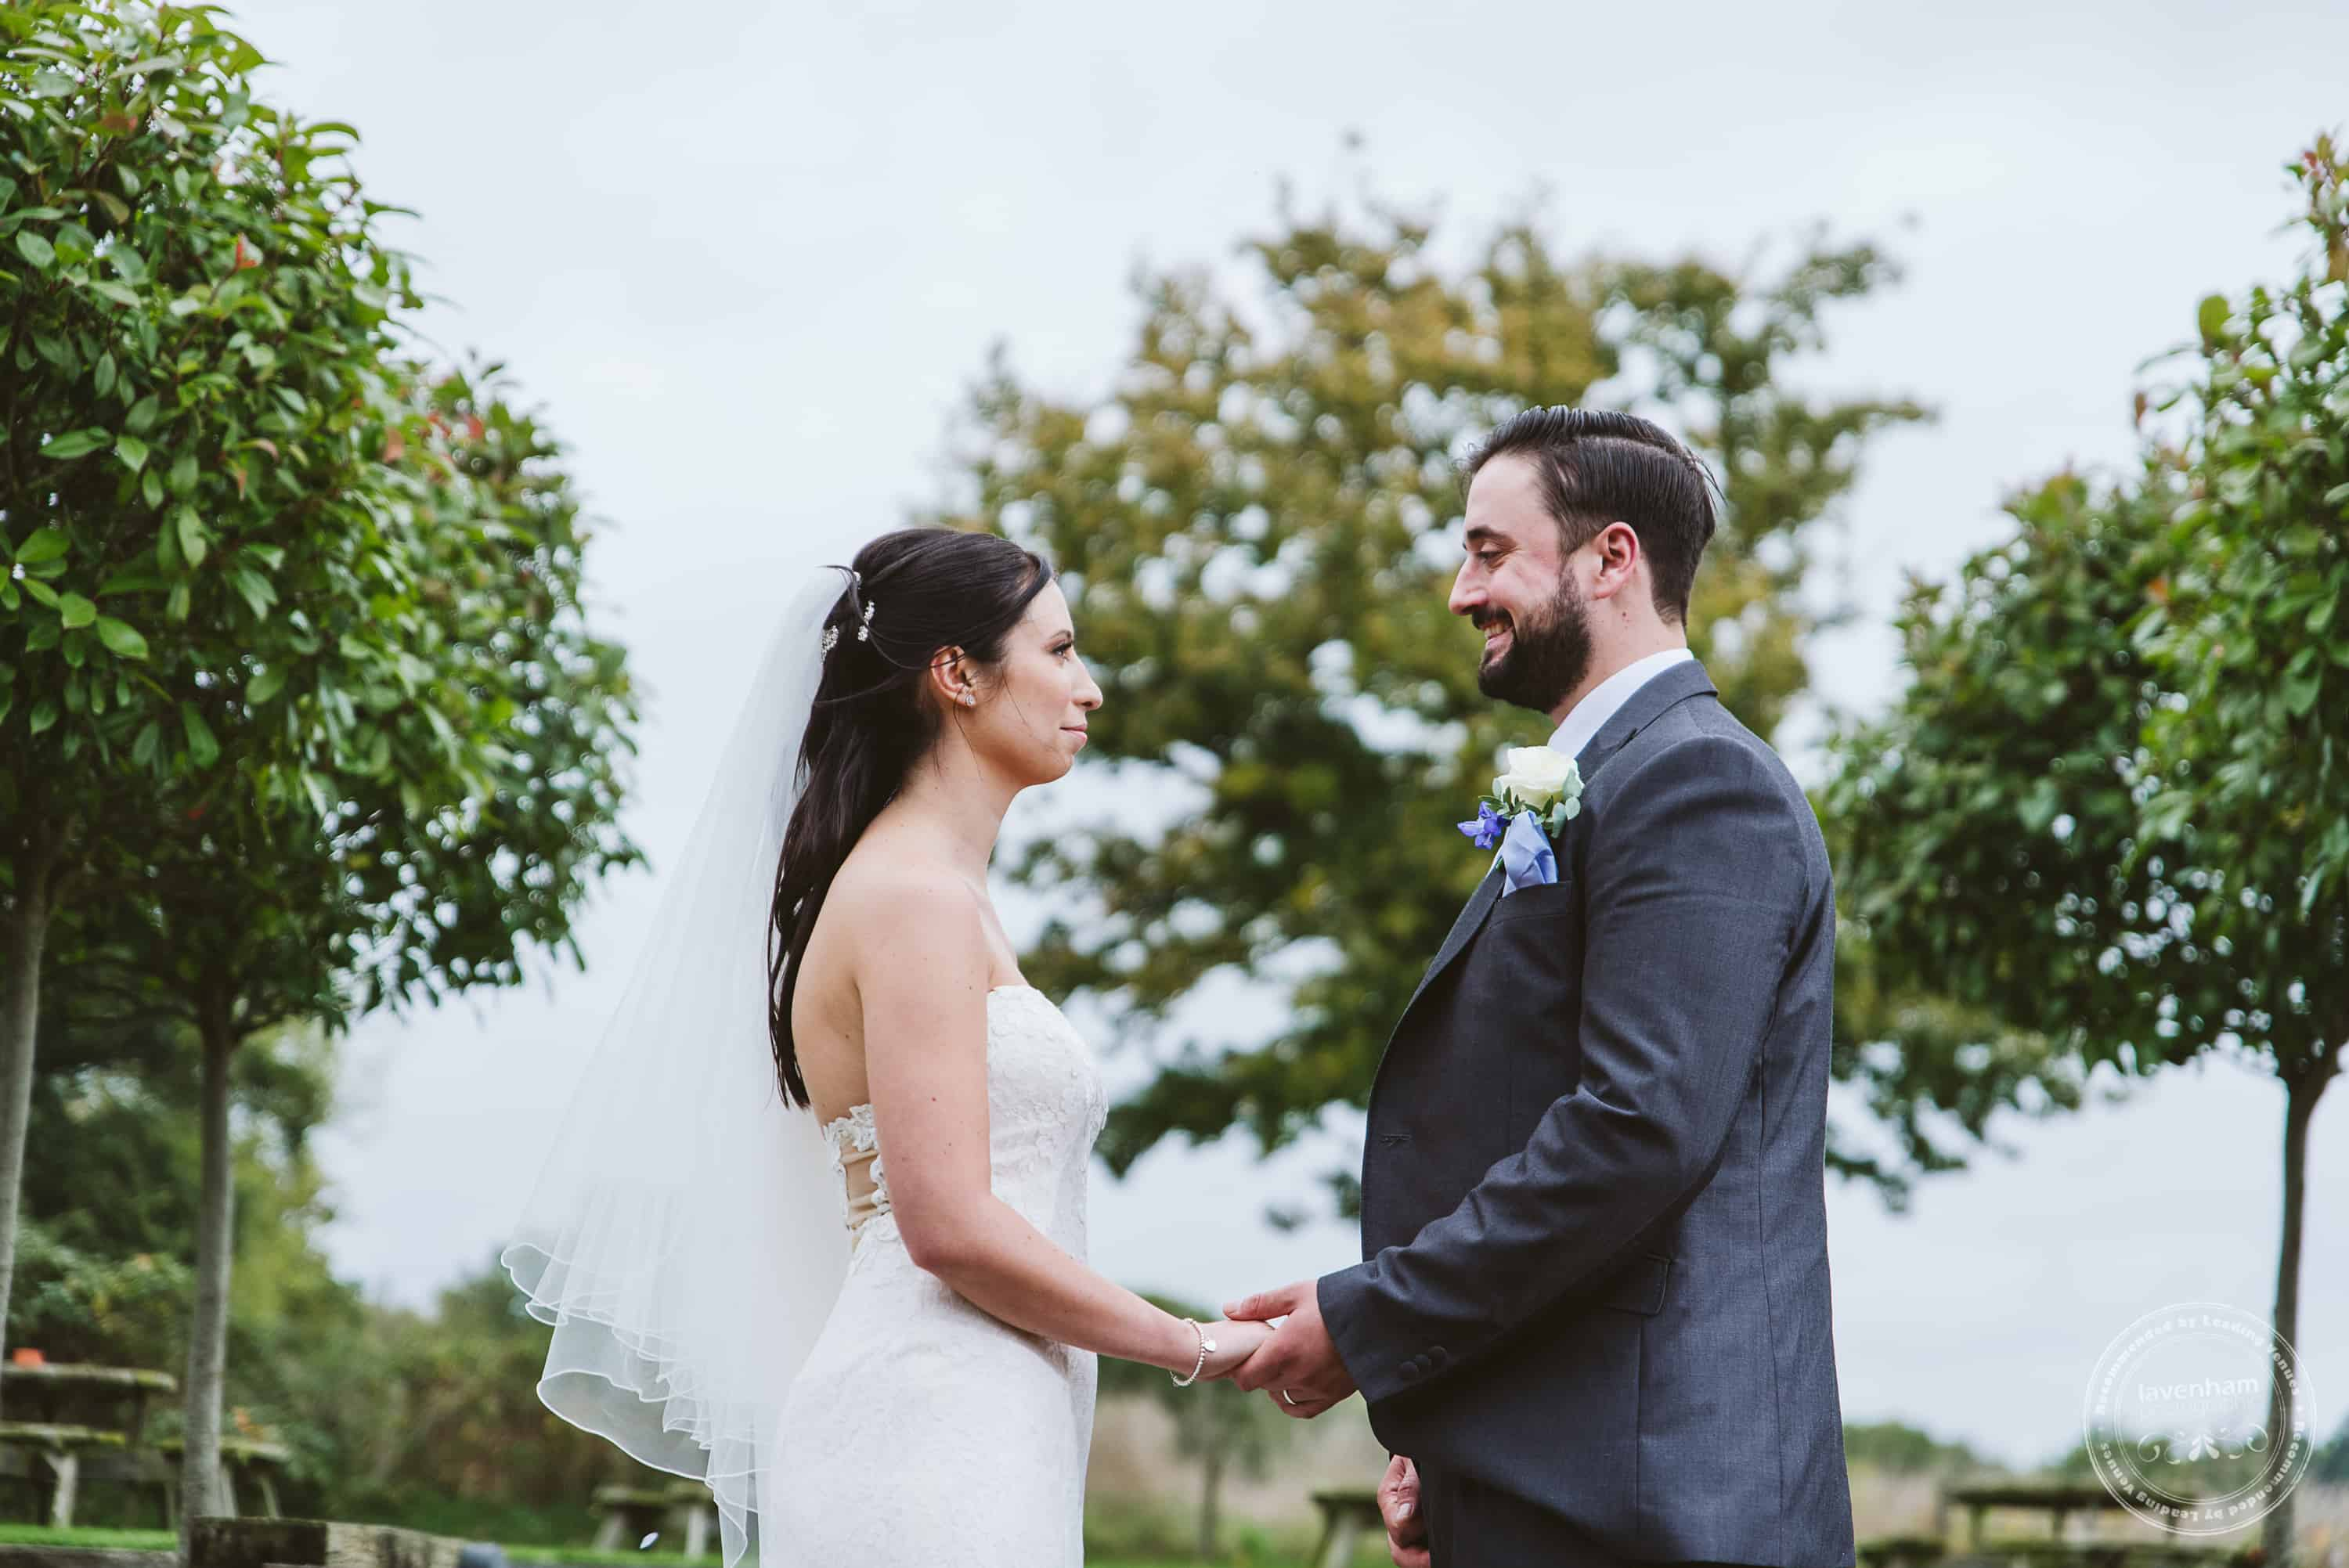 261019 Bull and Willow Room Essex Wedding Photographer 053